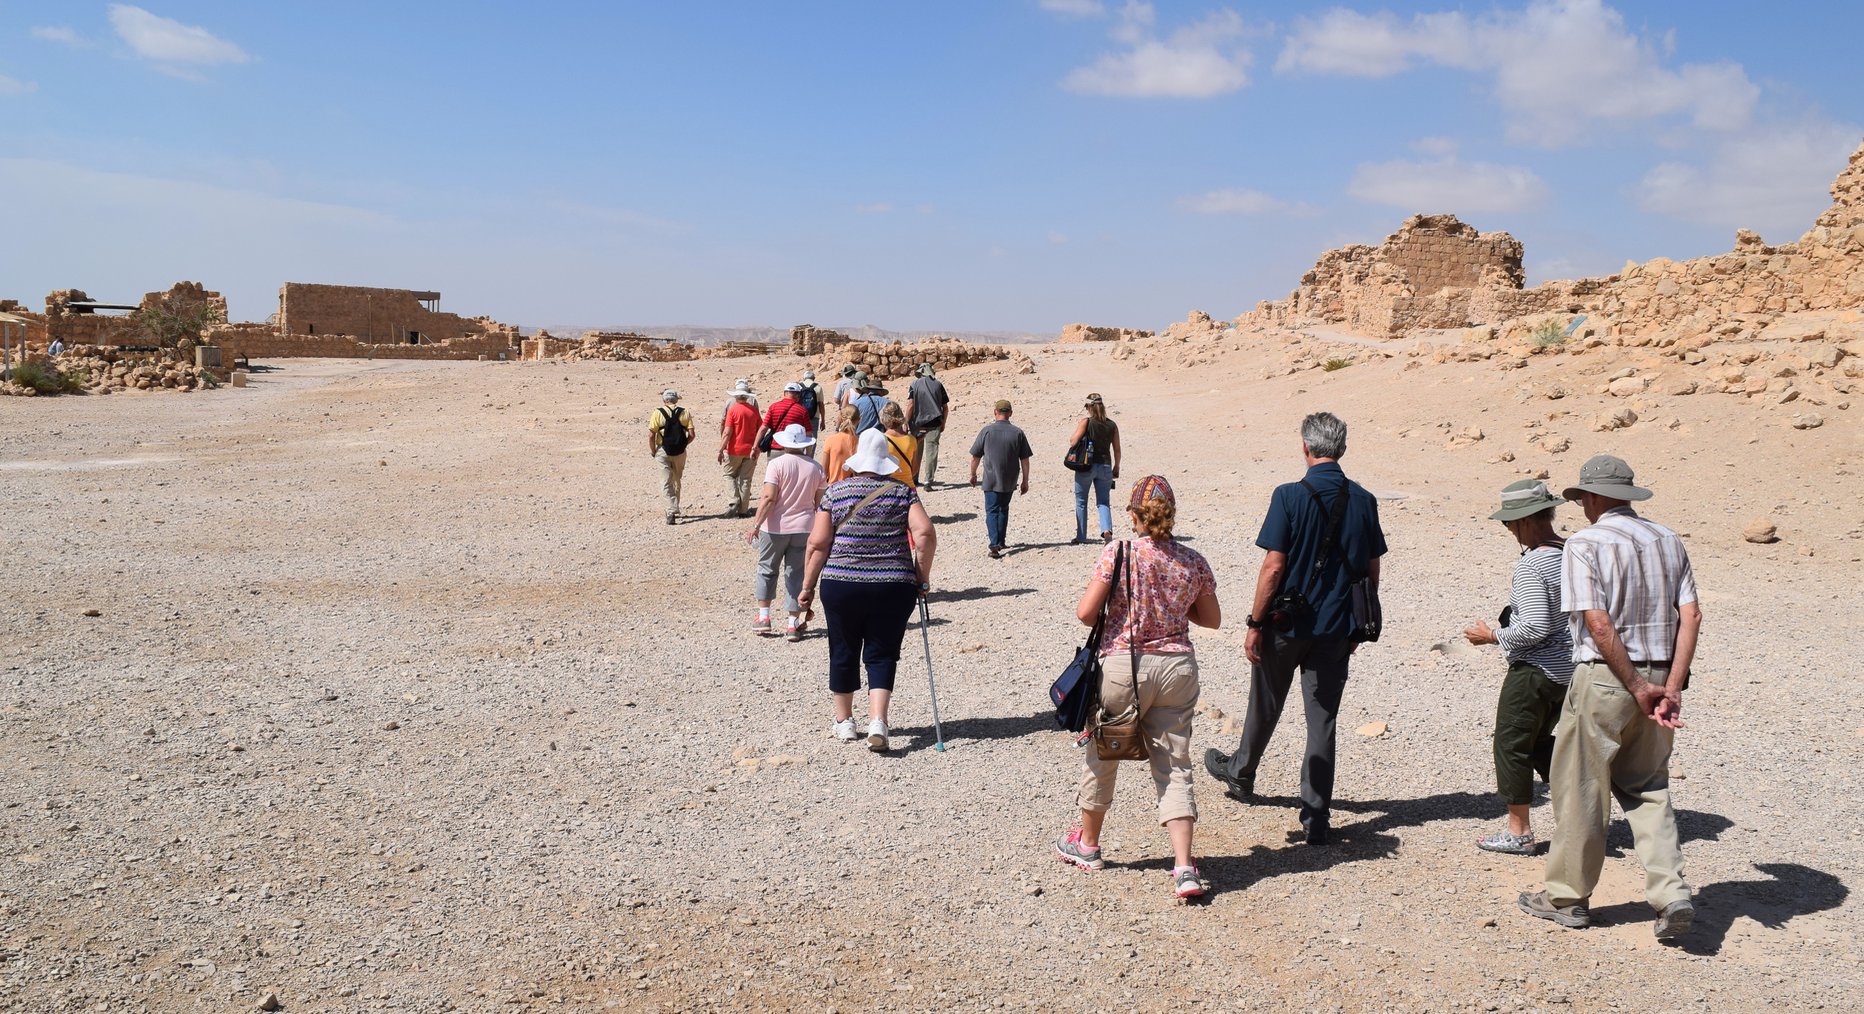 Pilgrims walk the well-trodden paths on the mountain top of Masada, near the Dead Sea. PHOTO: Ken Chitwood